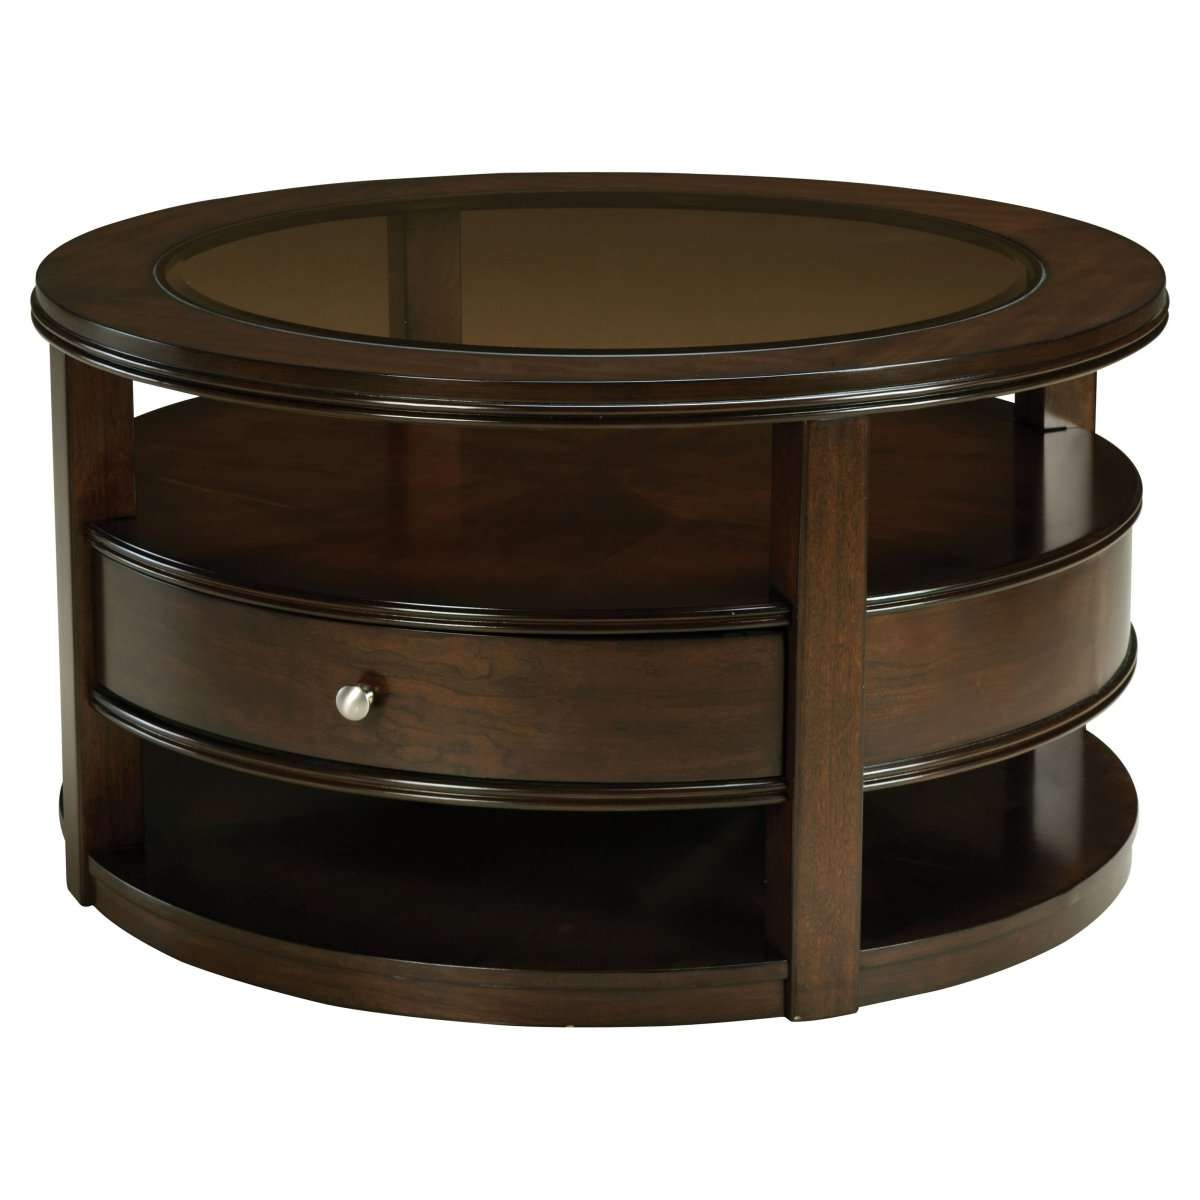 Round Glass Coffee Table Tags : Magnificent Coffee Tables With With Regard To Fashionable Round Coffee Tables With Drawers (View 17 of 20)